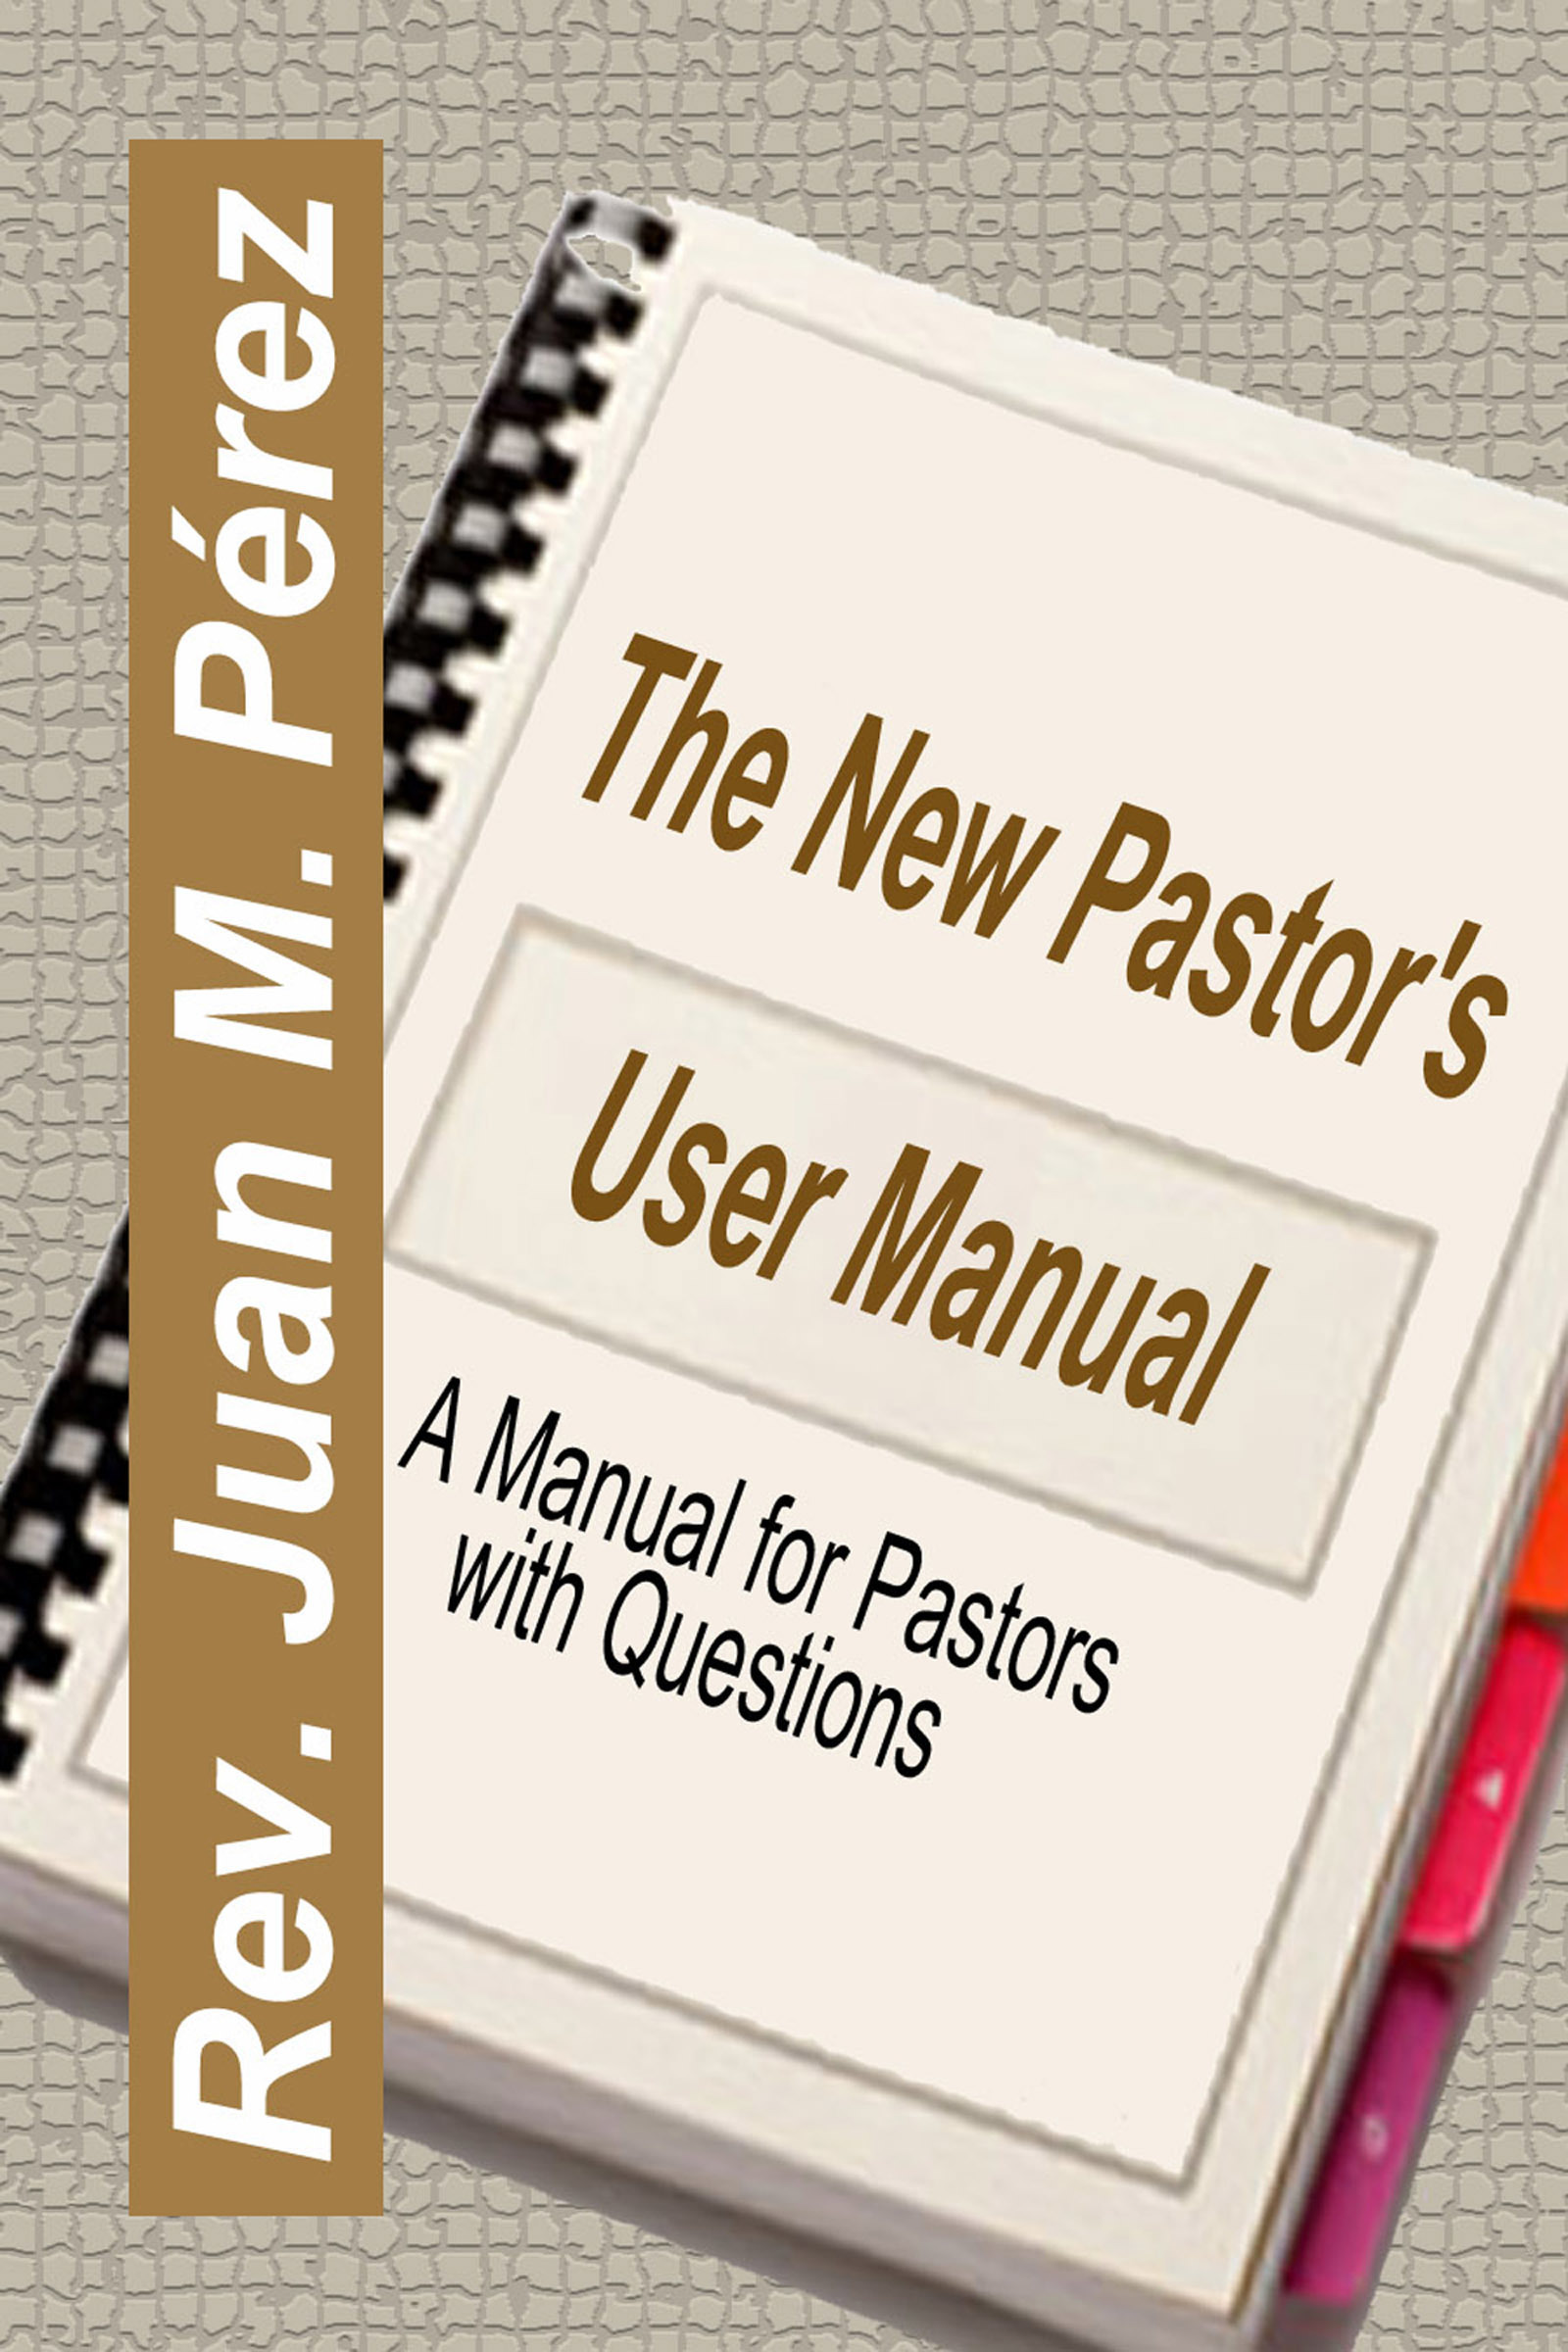 The New Pastors User Manual: A Manual for Pastors with Questions  by  Juan M. Perez